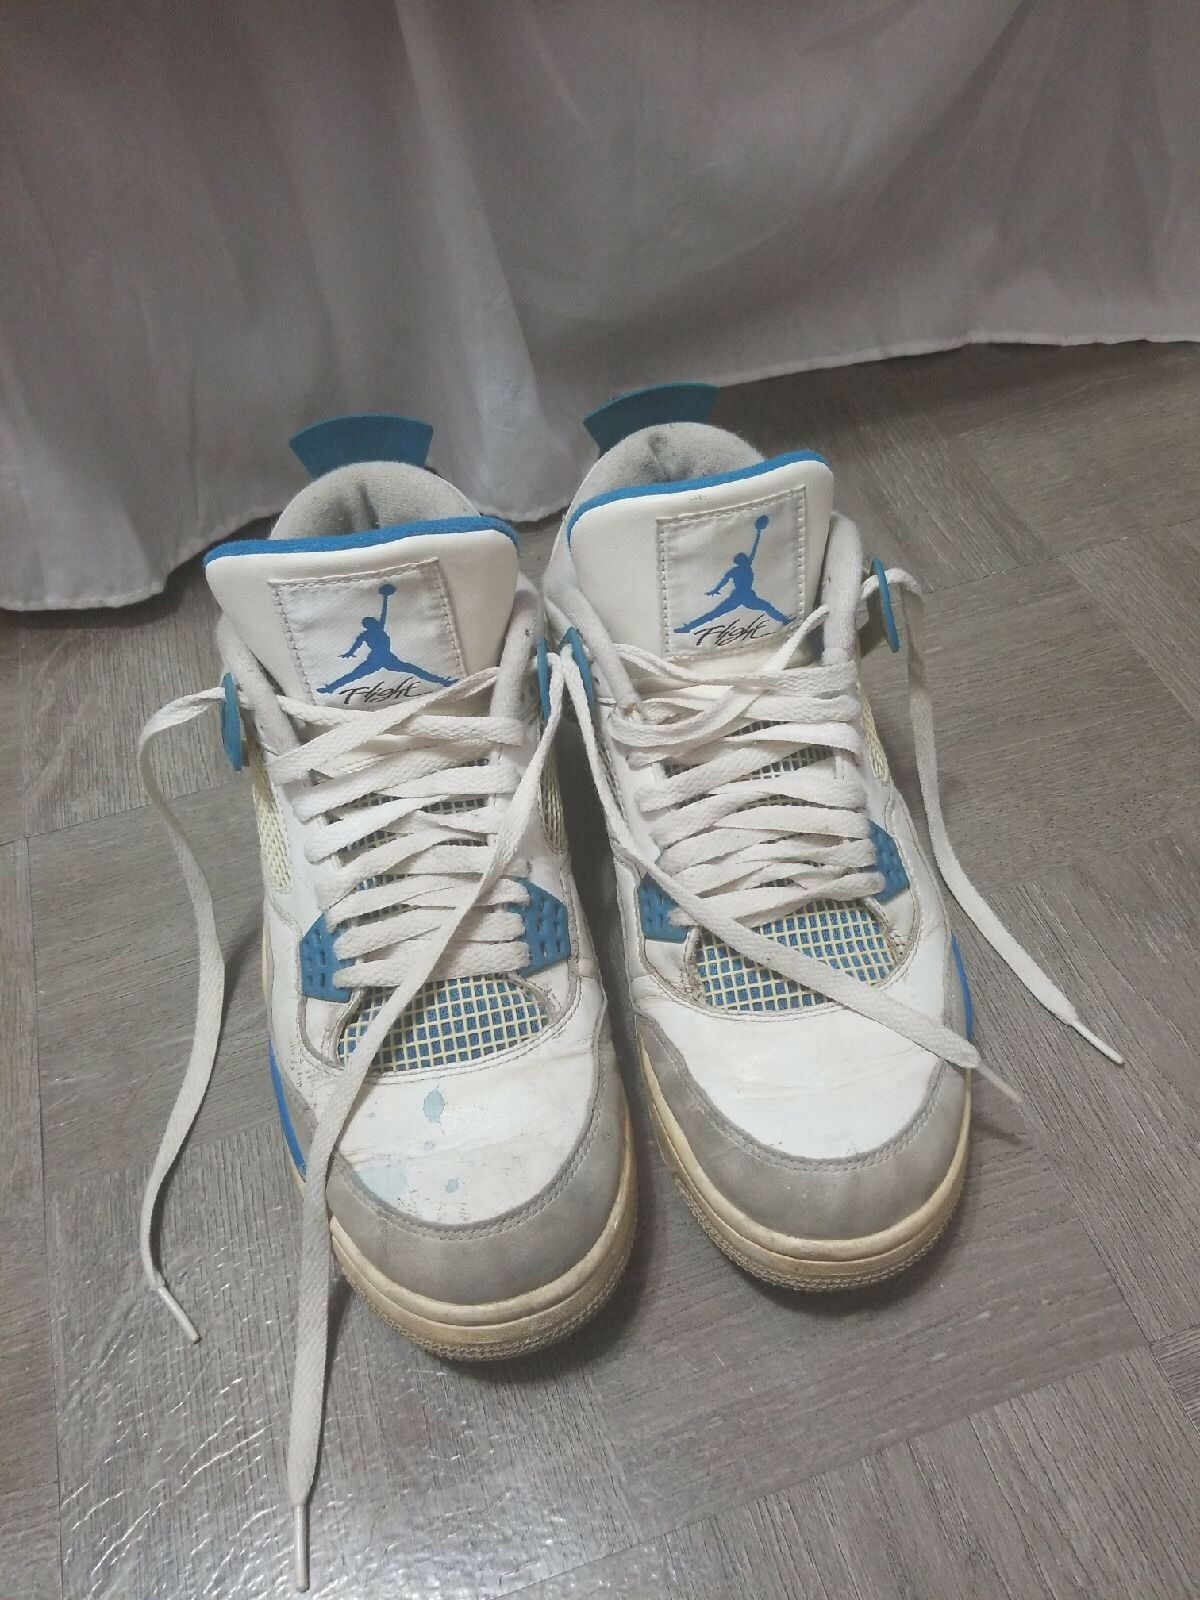 BEATER Jordan 4 Military blue size 10 Wild casual shoes